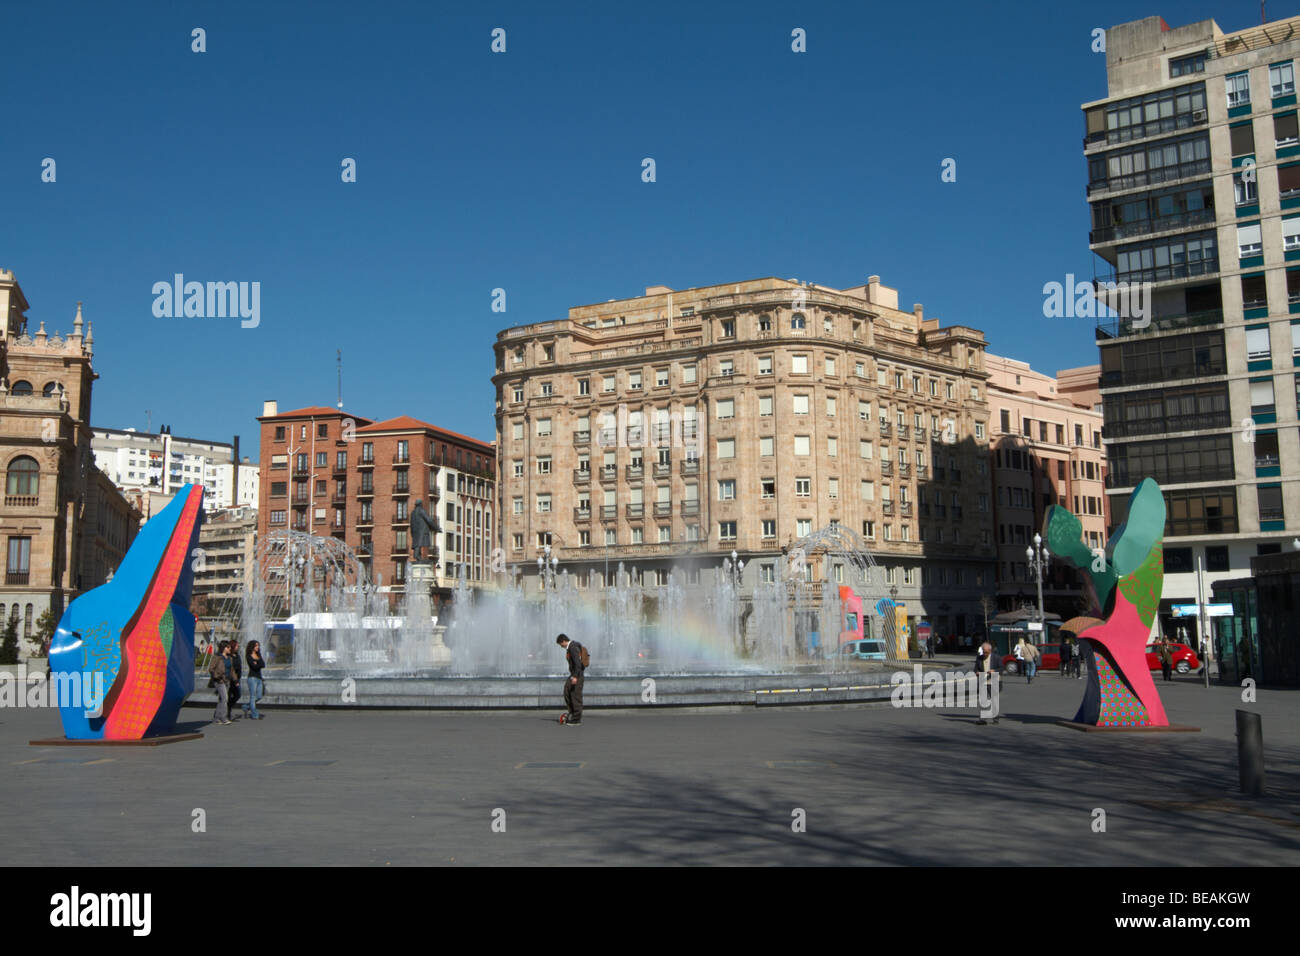 apartment buildings plaza zorilla Valladolid spain castile and leon - Stock Image